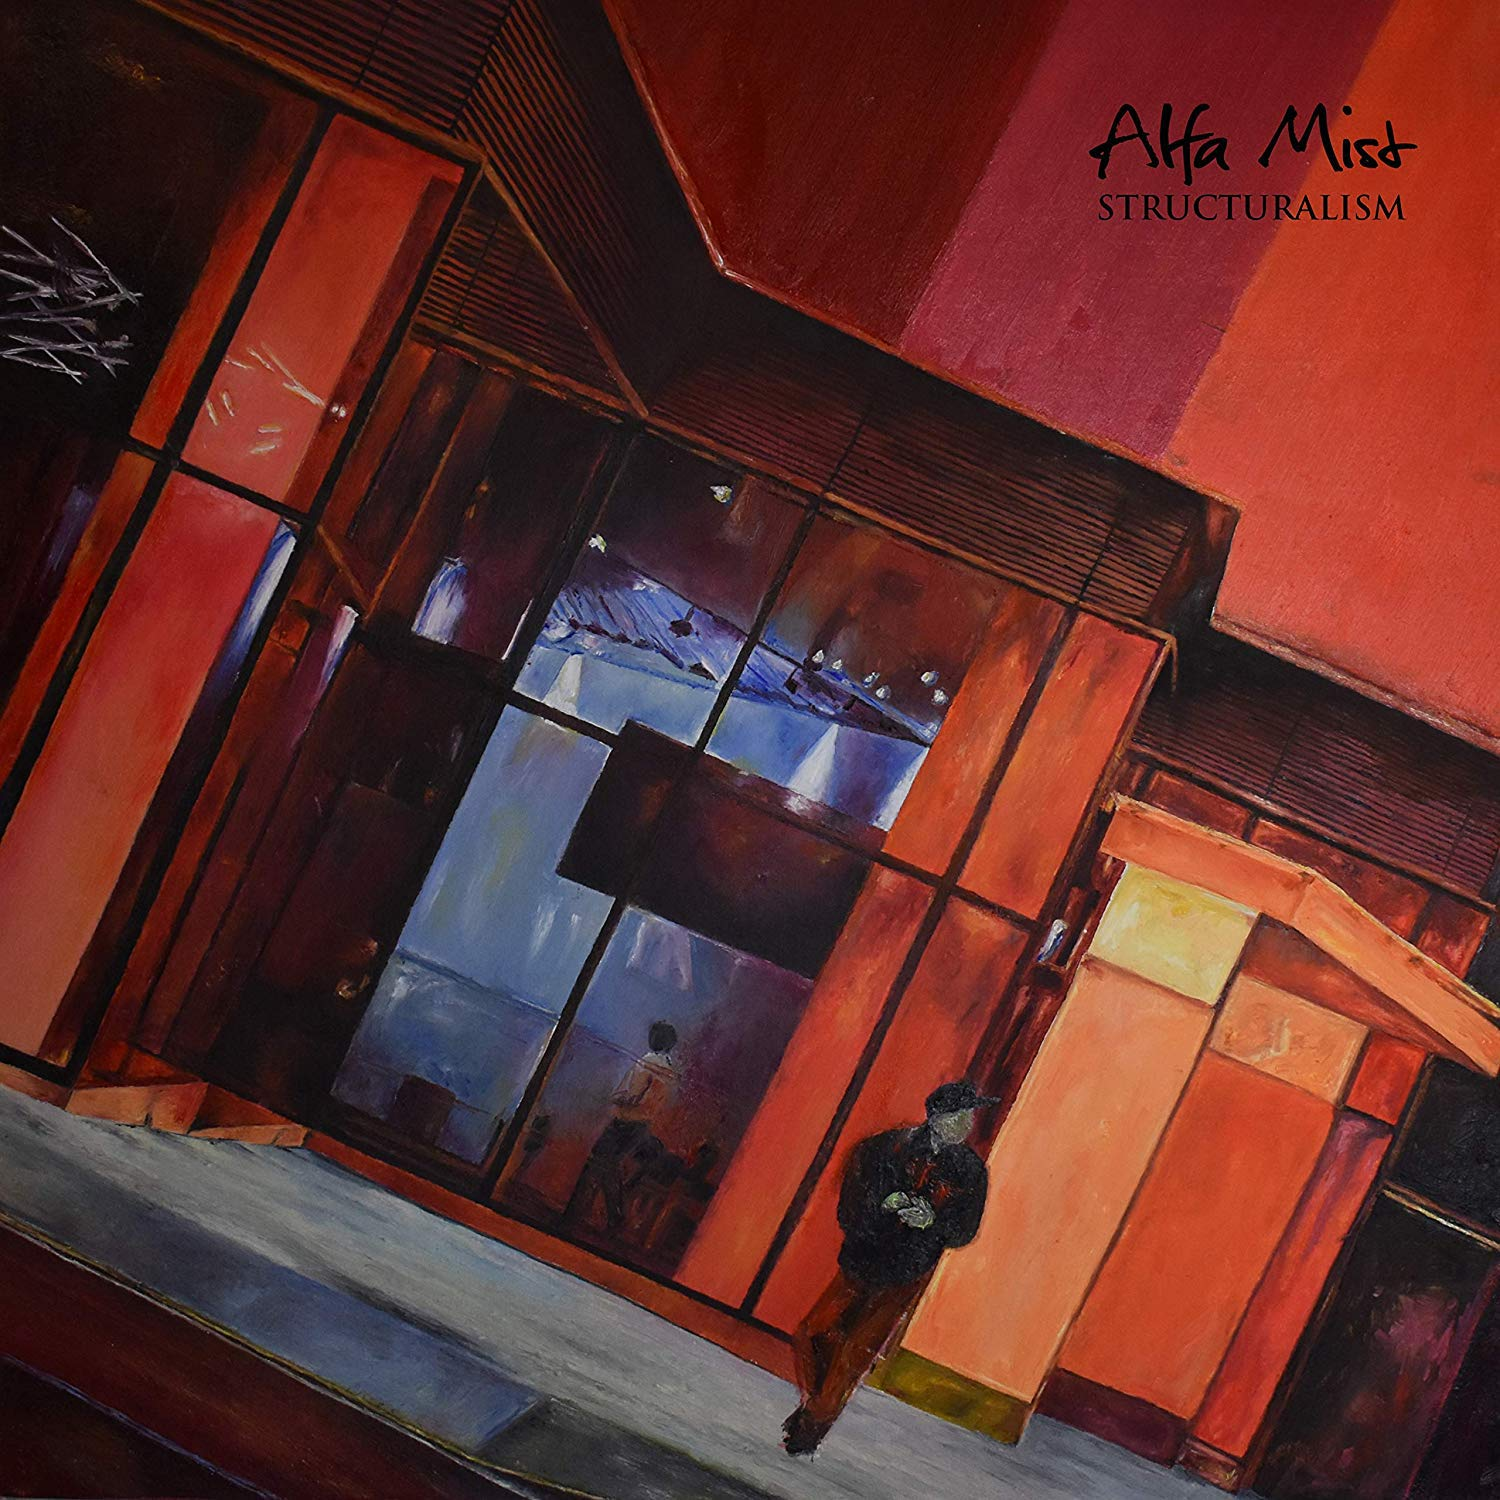 ALFA MIST - Structuralism cover